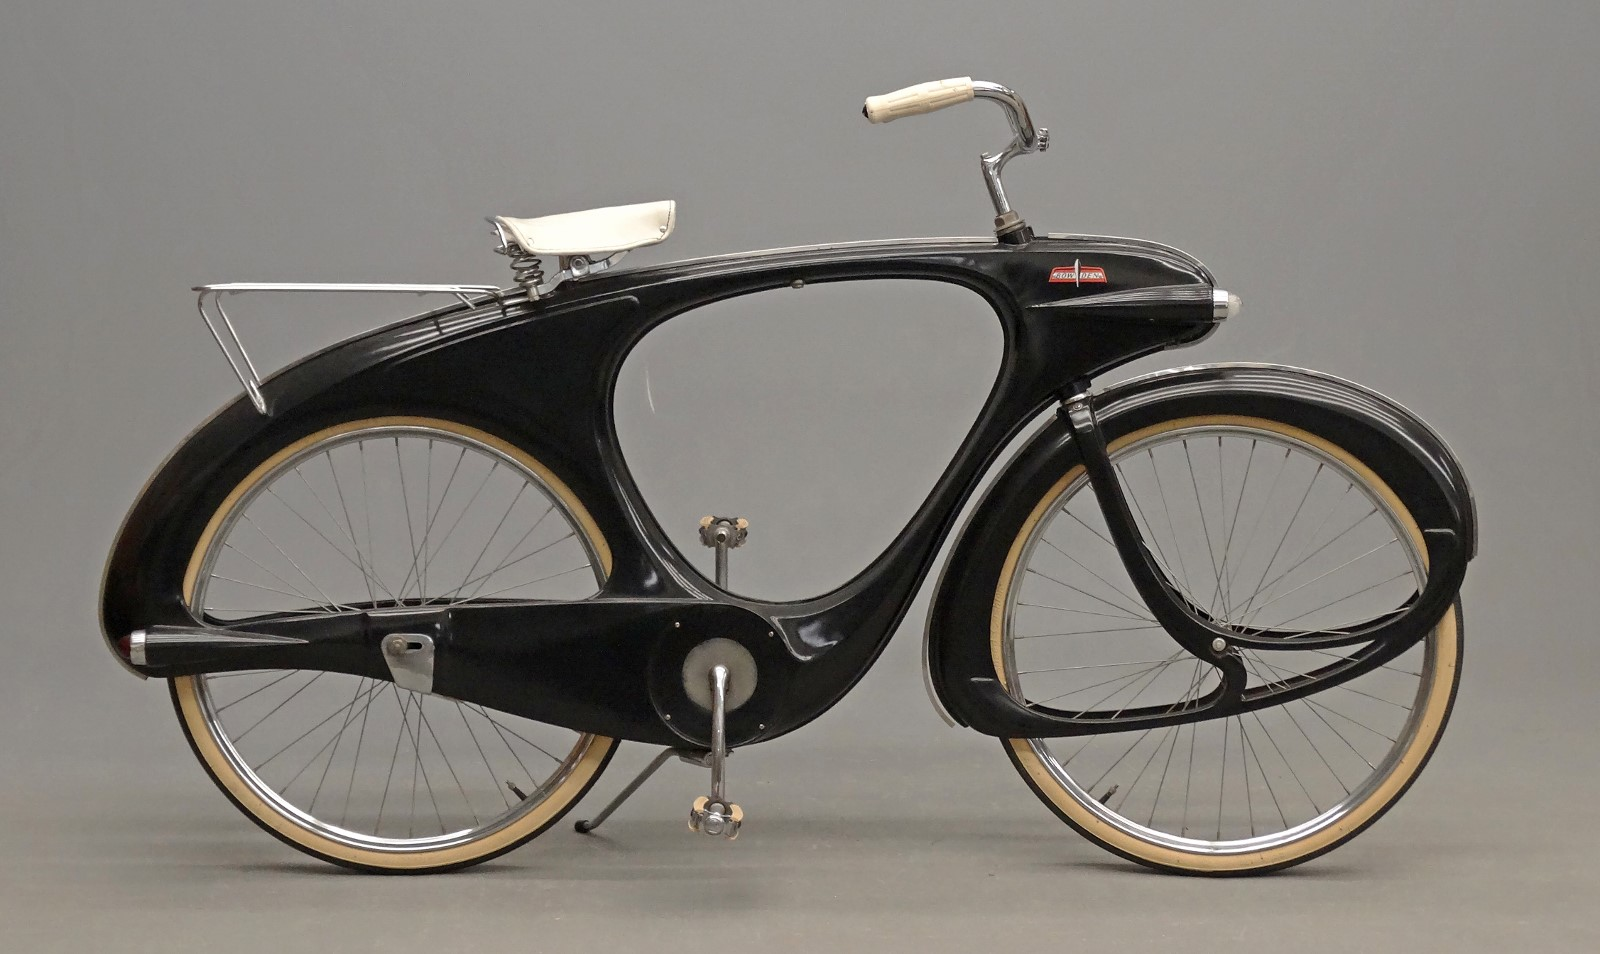 C 1960 S Bowden Spacelander Bicycle In Charcoal Black